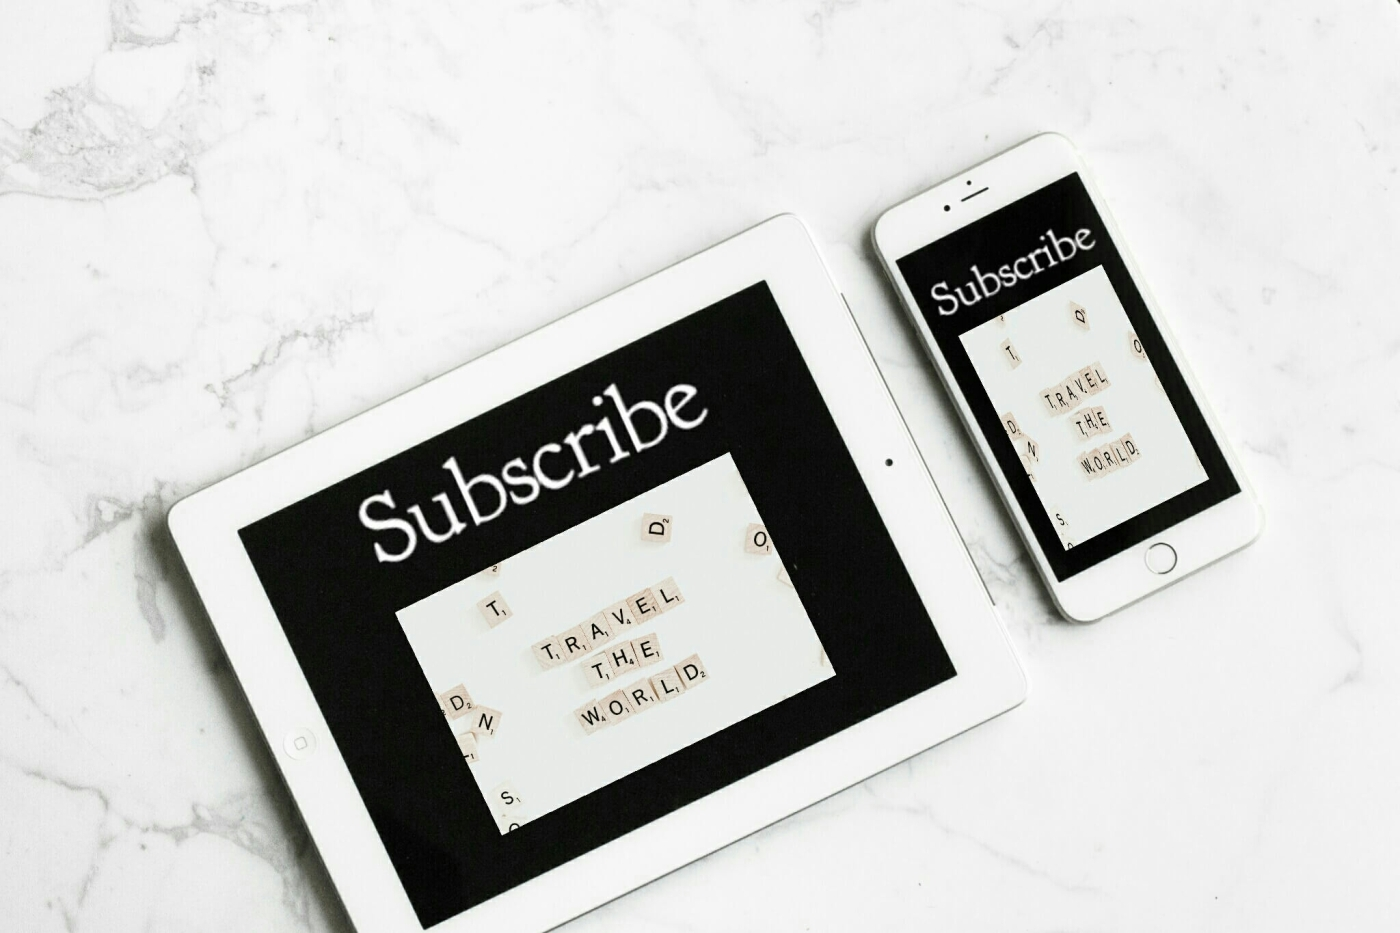 An iPad and iPhone with subscribe on their displays.